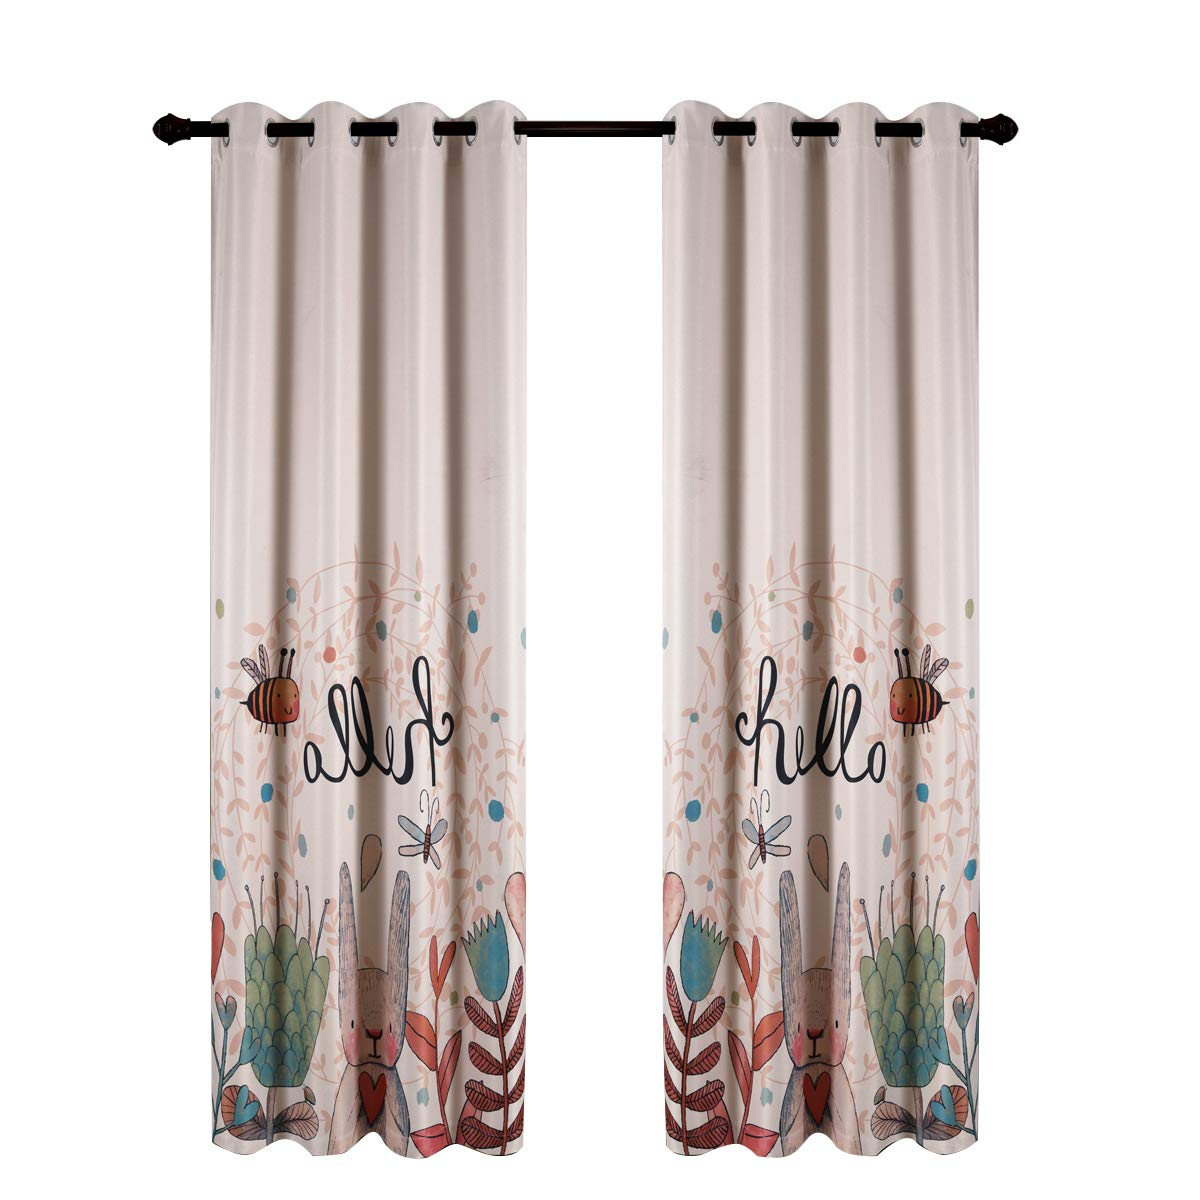 Taisier Home Cartoon Theme Baby Curtians for Nursery Girls,84 Inch Length for Childrens Bedroom Bunny Bee Dragonfly with Natural Style Design,1 Panel Set Ring Top Style Lovely Curtain Drapes